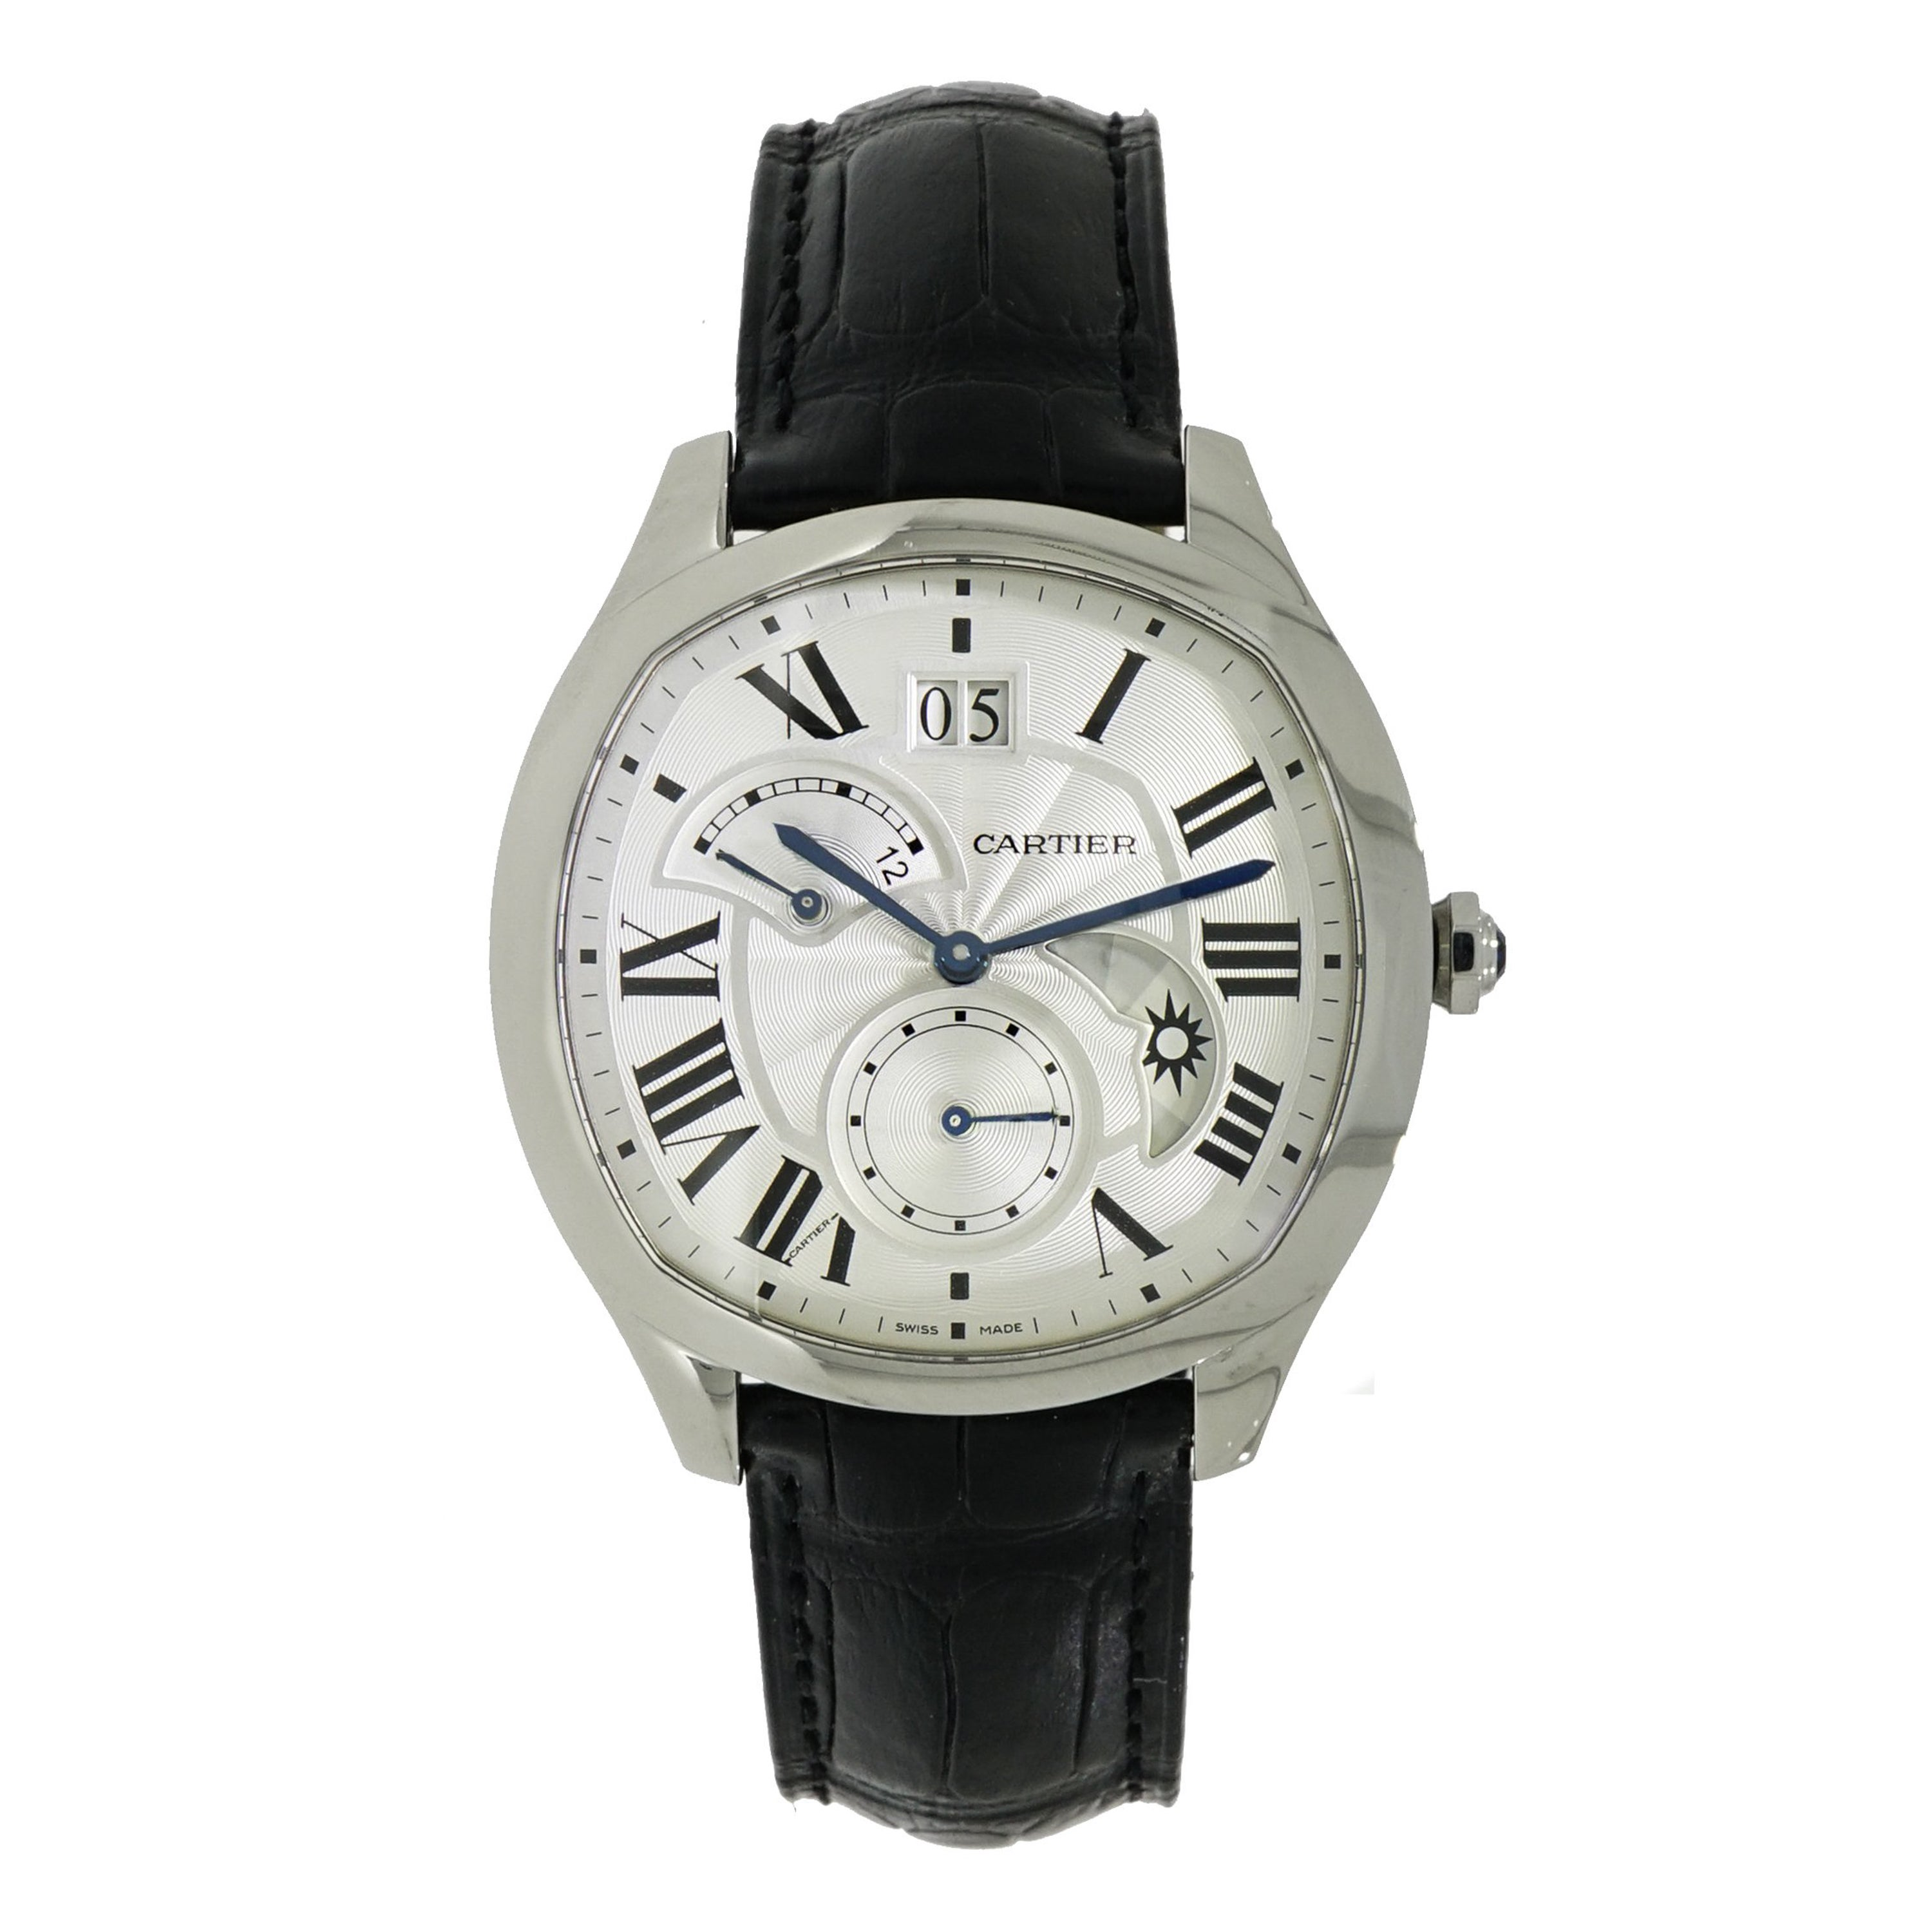 Cartier Watches Cartier Stainless Steel Drive De Cartier Gmt Self Winding Wristwatch